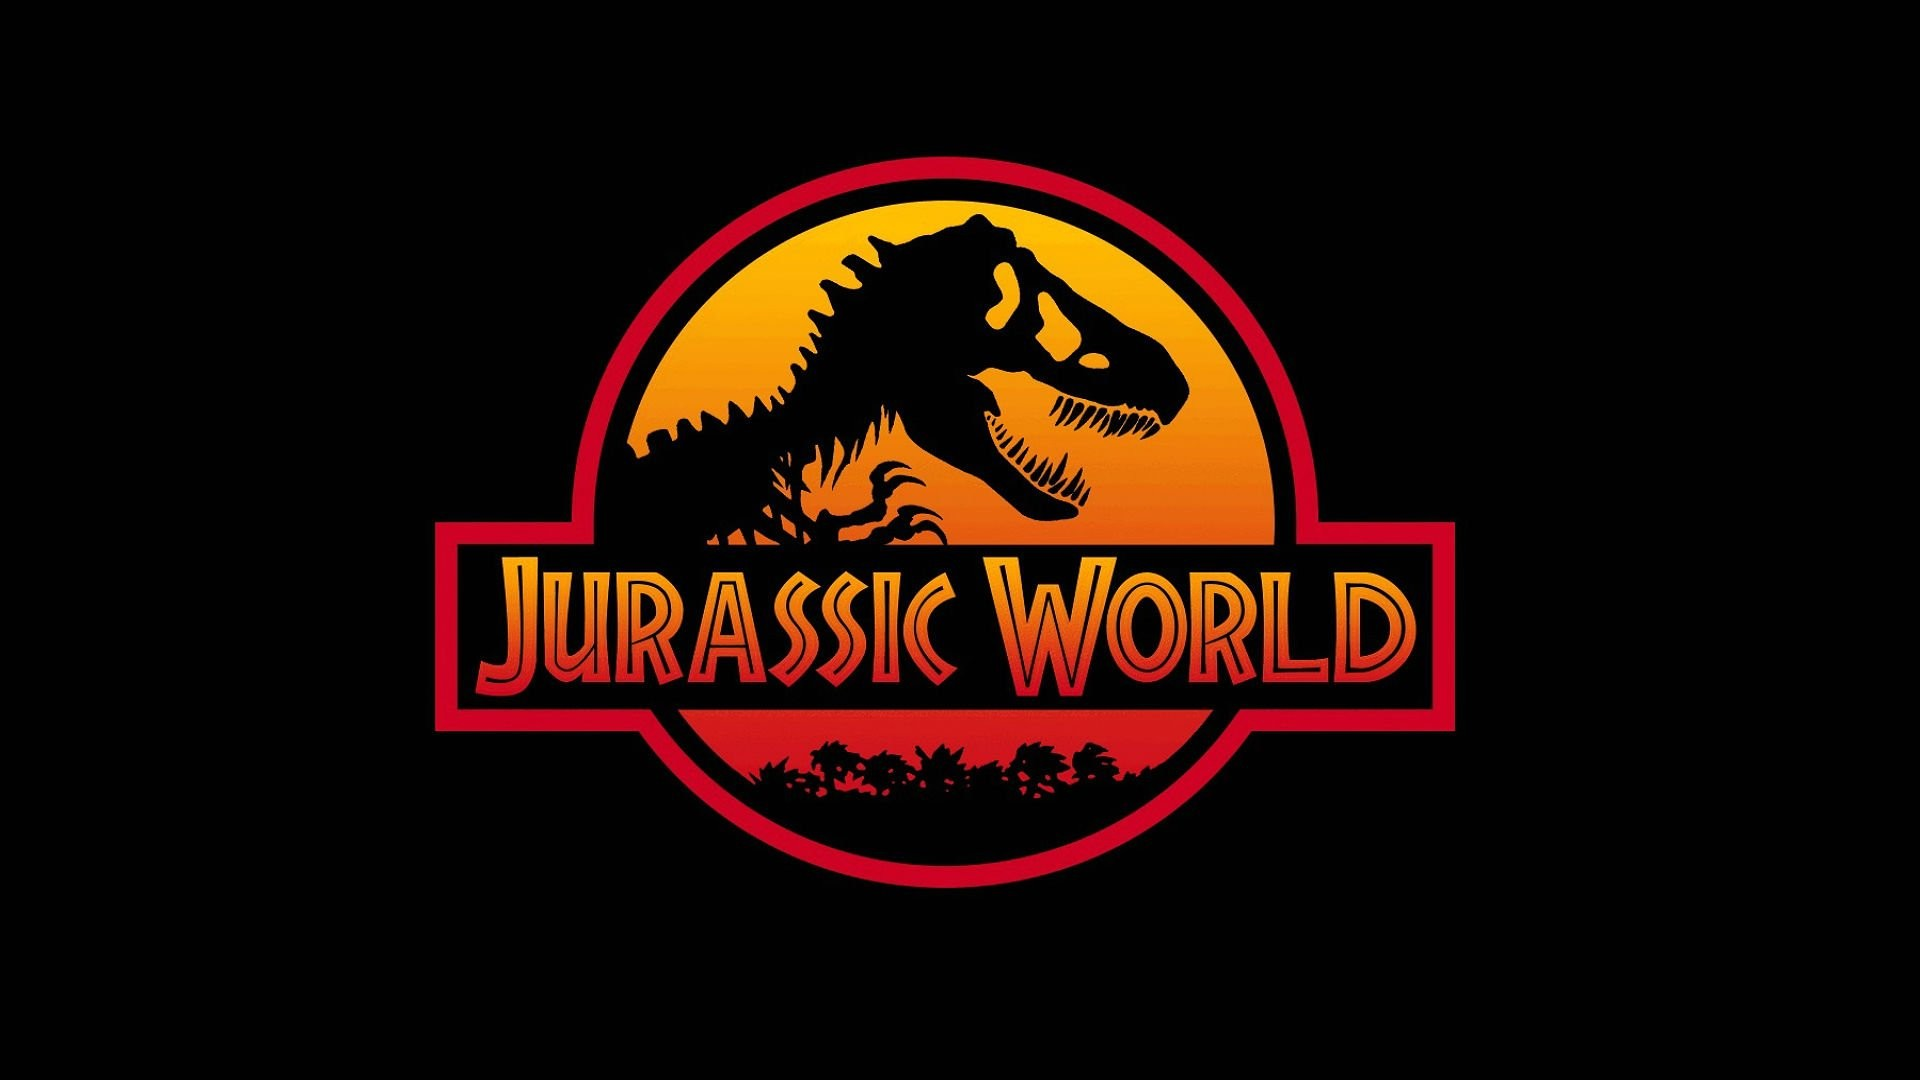 Jurassic Park Wallpaper Iphone 70 Images